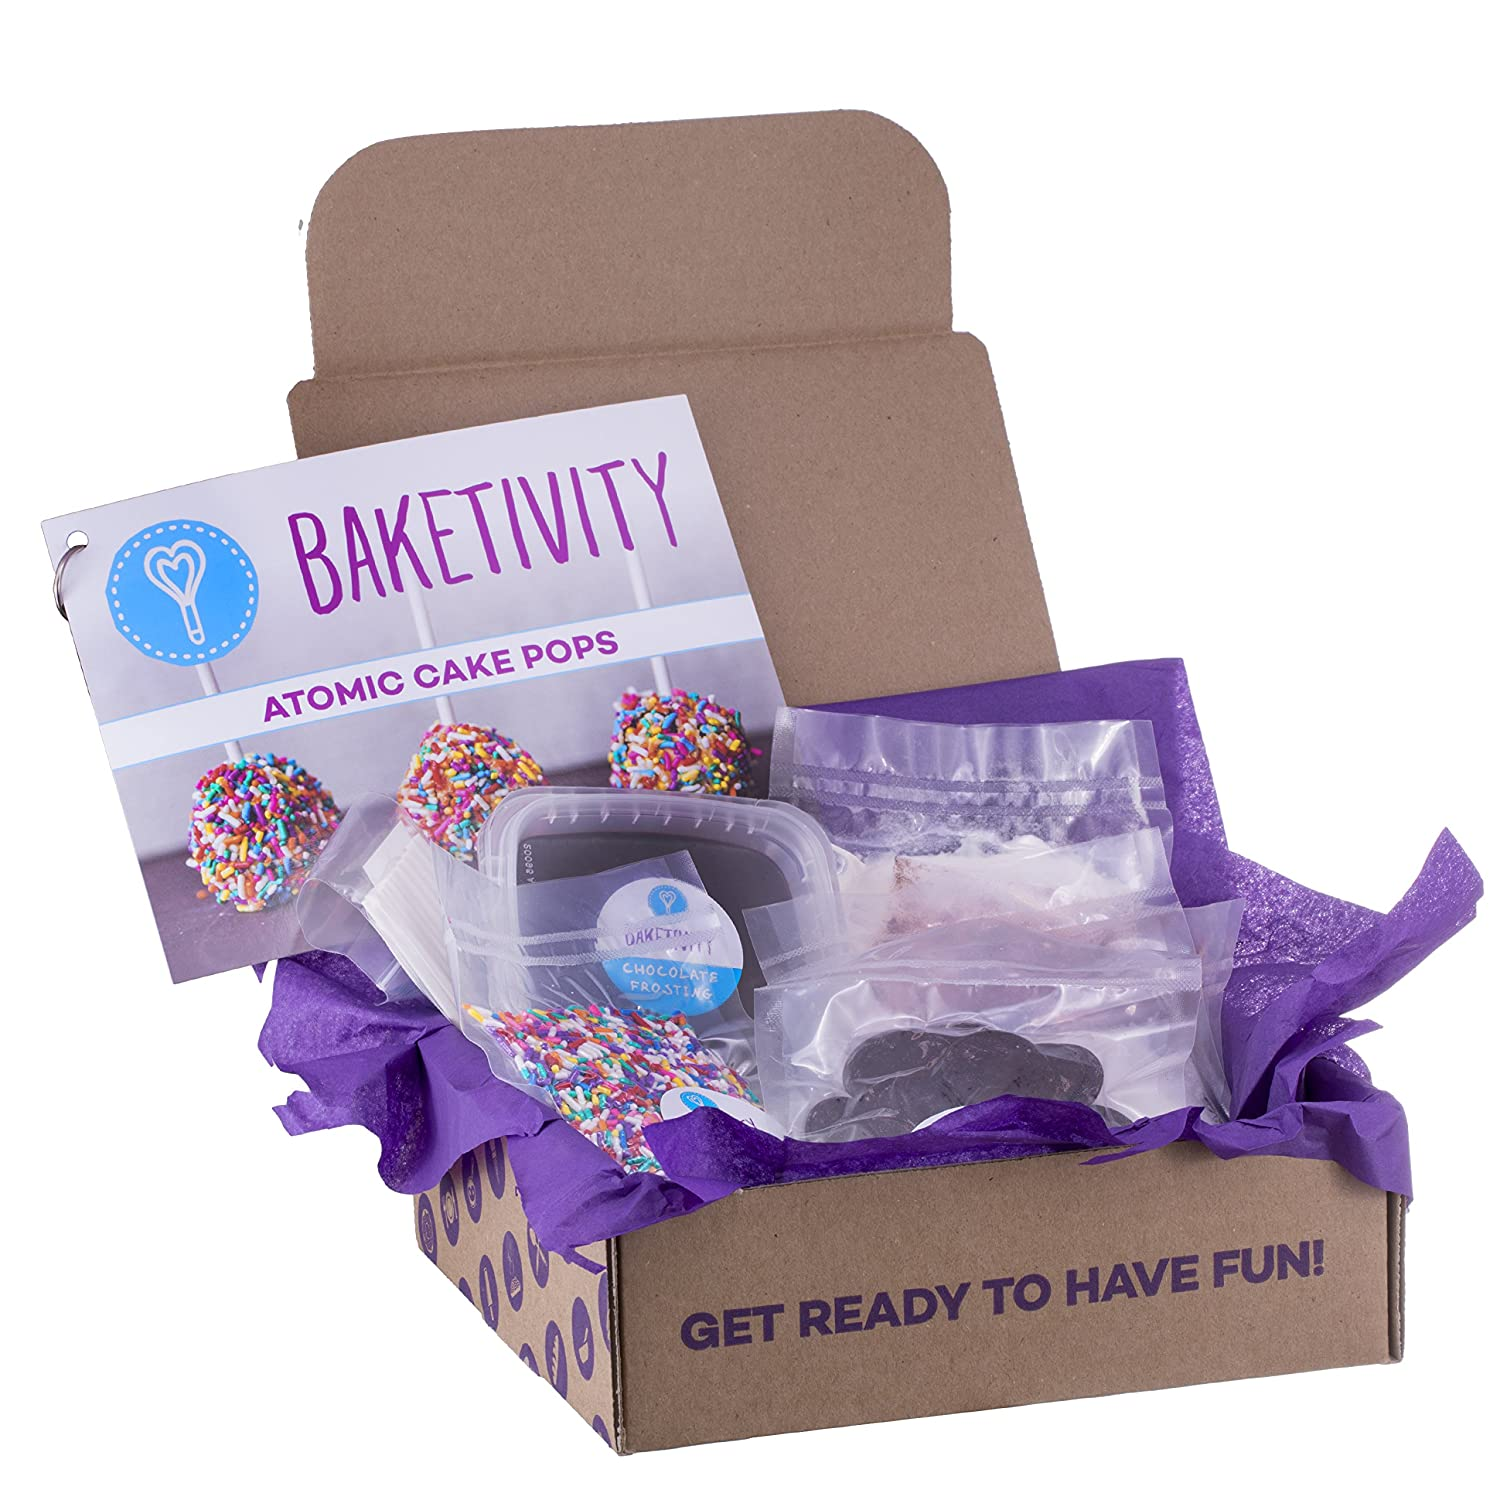 Baketivity Kids Baking Set, Meal Cooking Party Supply Kit for Teens, Real Fun Little Junior Chef Essential Kitchen Lessons, Includes Pre-Measured Ingredients, Chocolate Chunk Cookies